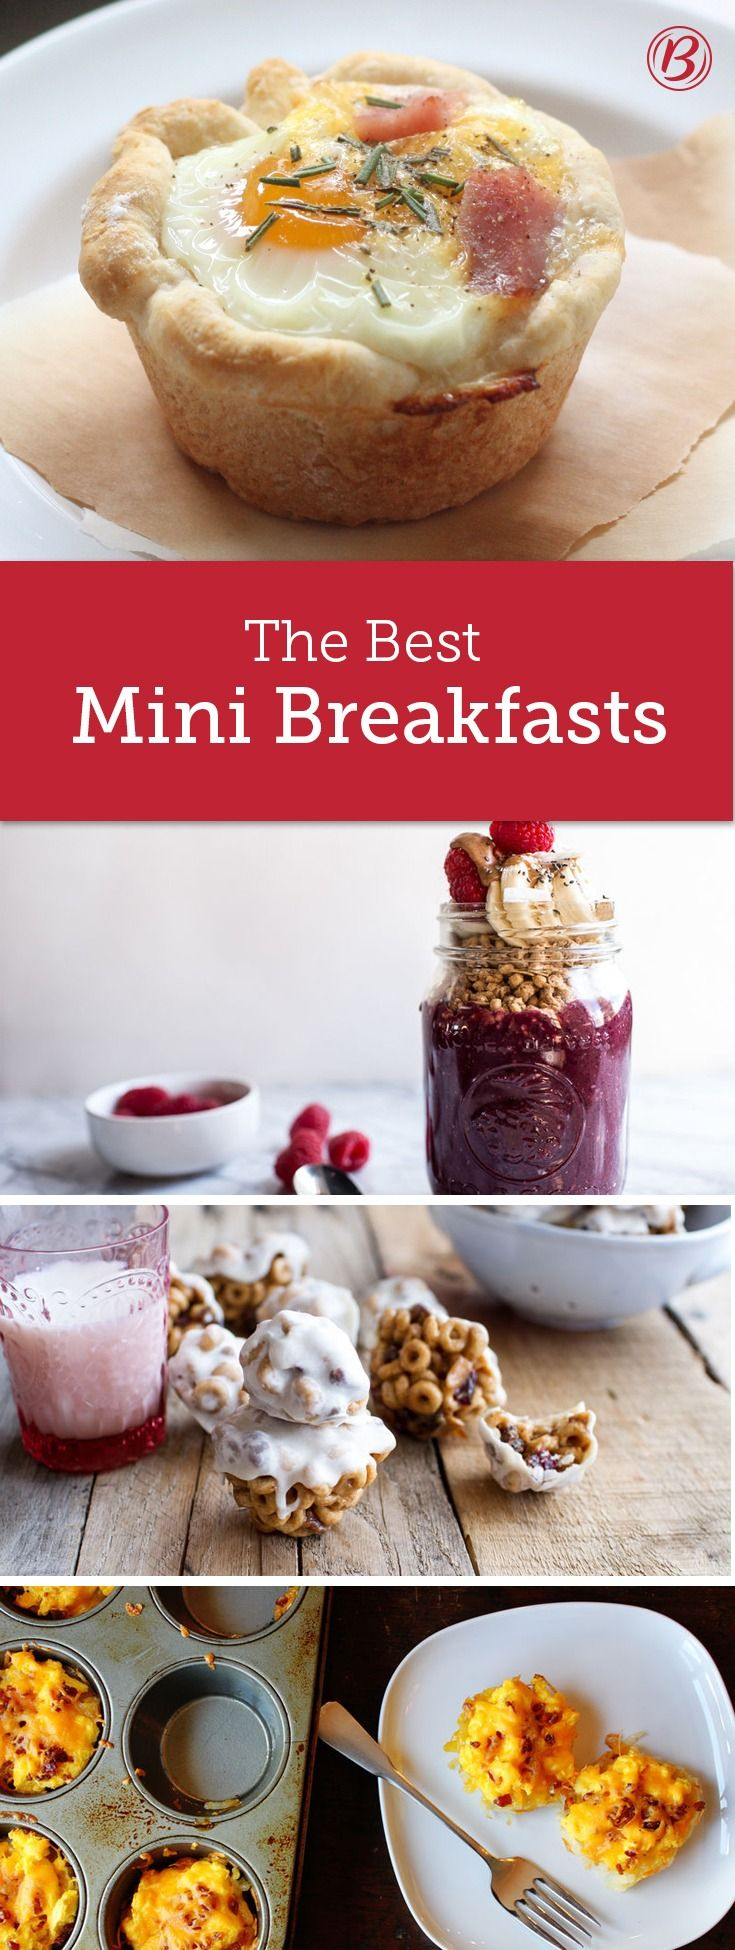 Don't skip the most important meal of the day: Jumpstart your morning with these easy mini breakfast bites! Each of them can be made-ahead so you can hit the snooze button and have a delicious breakfast.